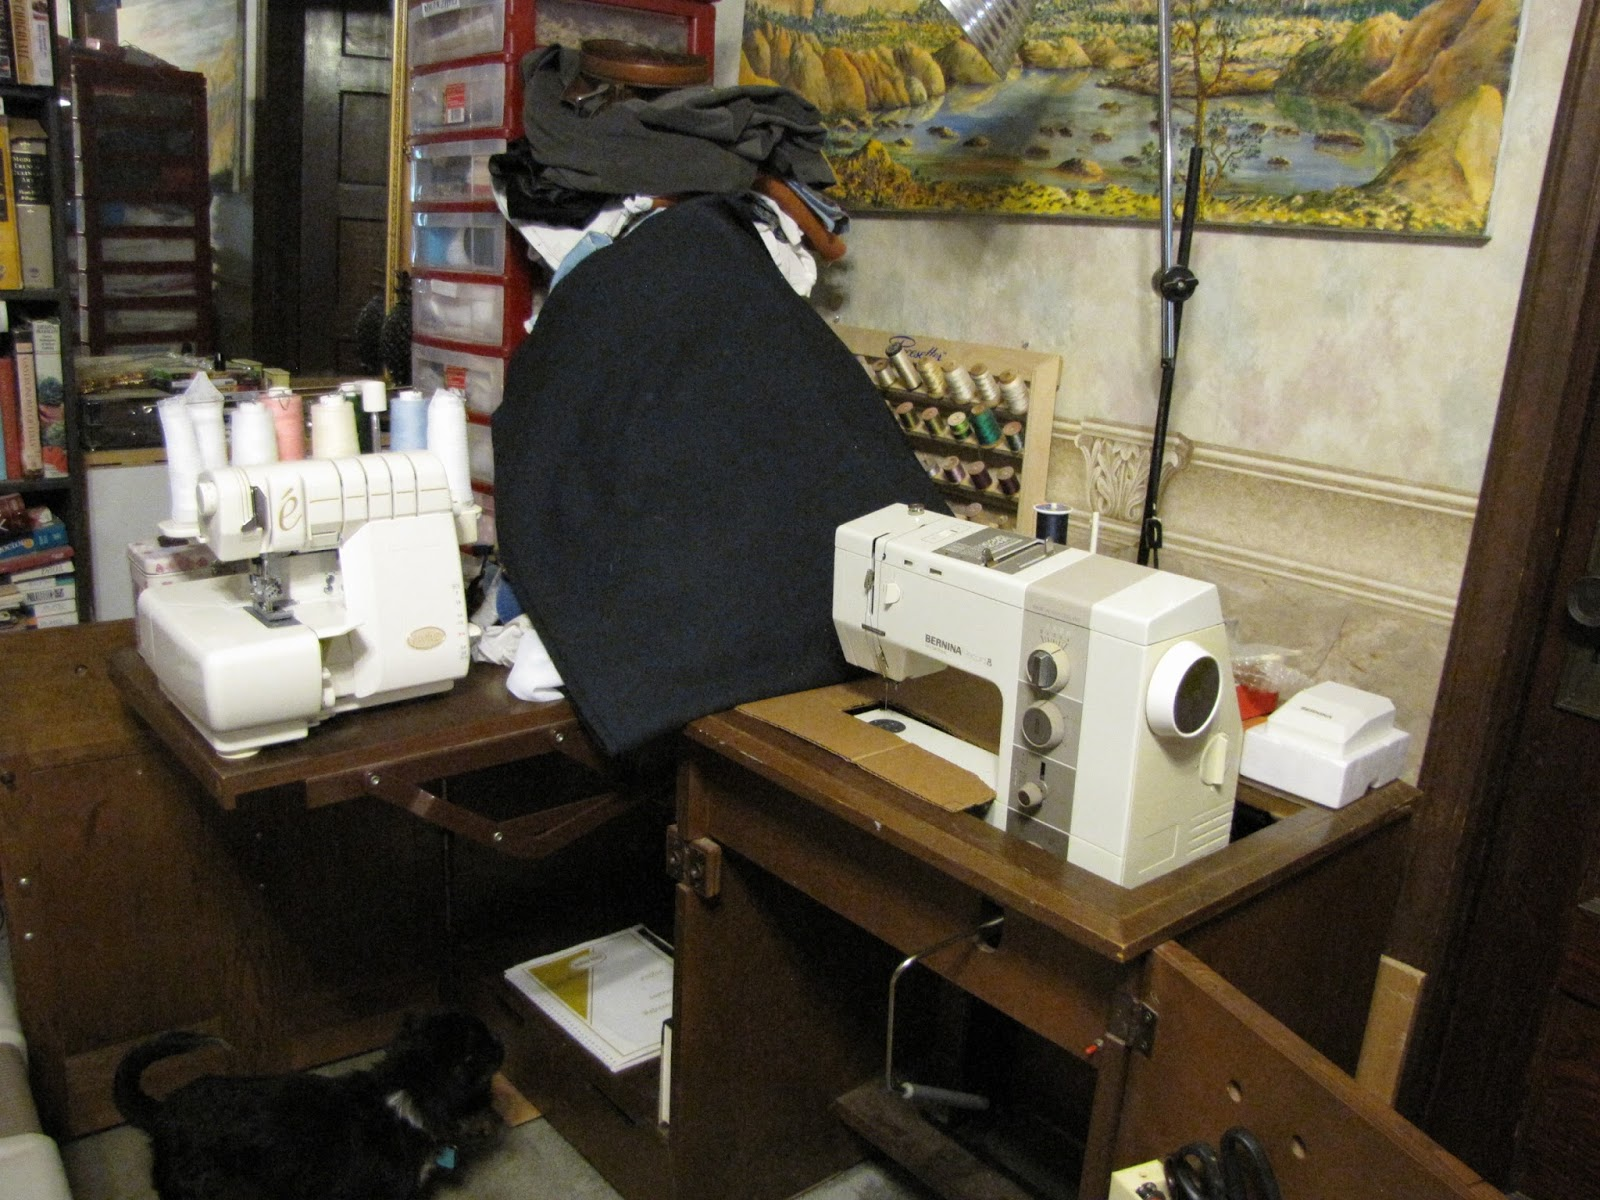 My very favorite sewing machine currently is the Bernina 930 Record Electronic sewing machine. The 930 was an expensive sewing machine when it was new ... & VINTAGE SEWING MACHINES: Bernina 930 u0026 why it is My Favorite Sewing ...